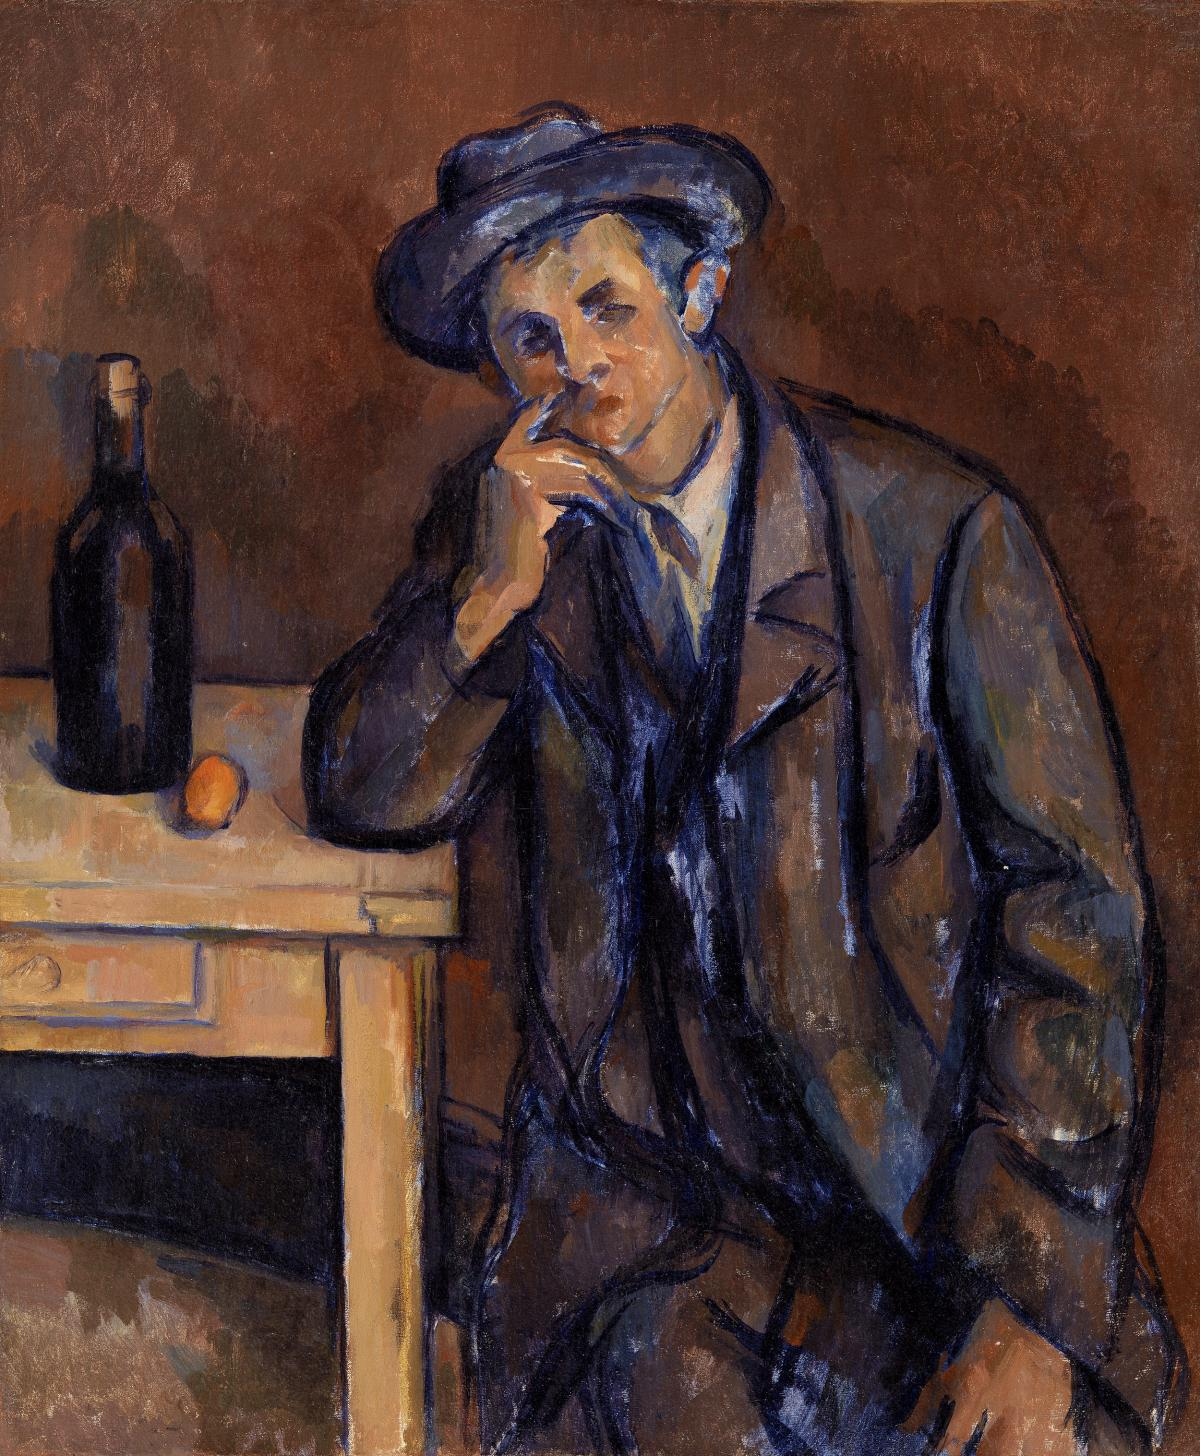 The Drinker (Le Buveur) (ca. 1898–1900) by Paul Cézanne. Original from Original from Barnes Foundation.  #426020